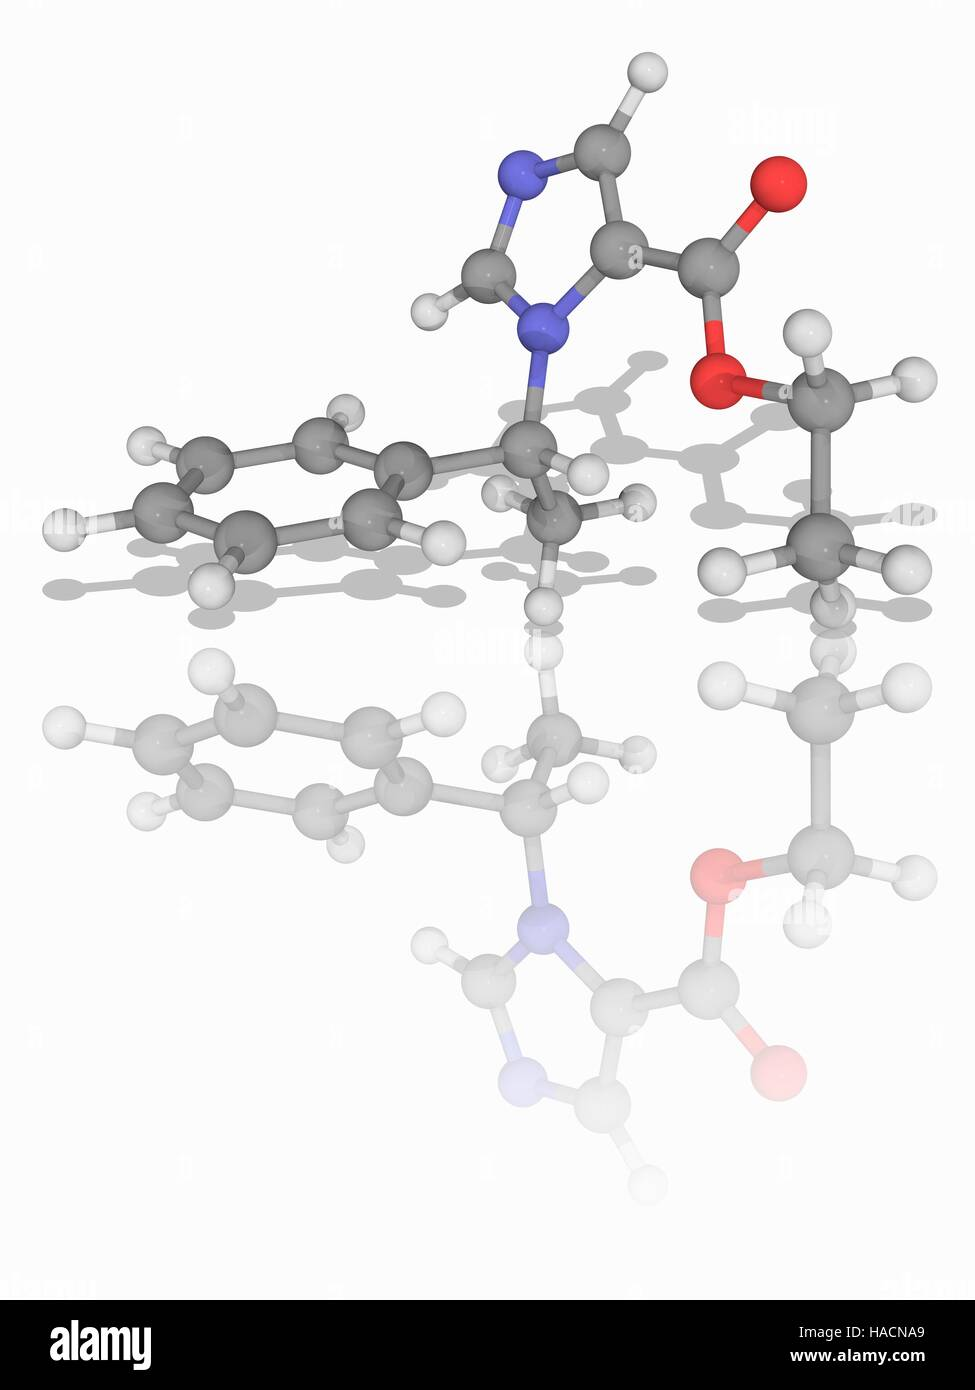 Etomidate. Molecular model of the drug etomidate (C14.H16.N2.O2), used as a short-acting intravenous anaesthetic - Stock Image